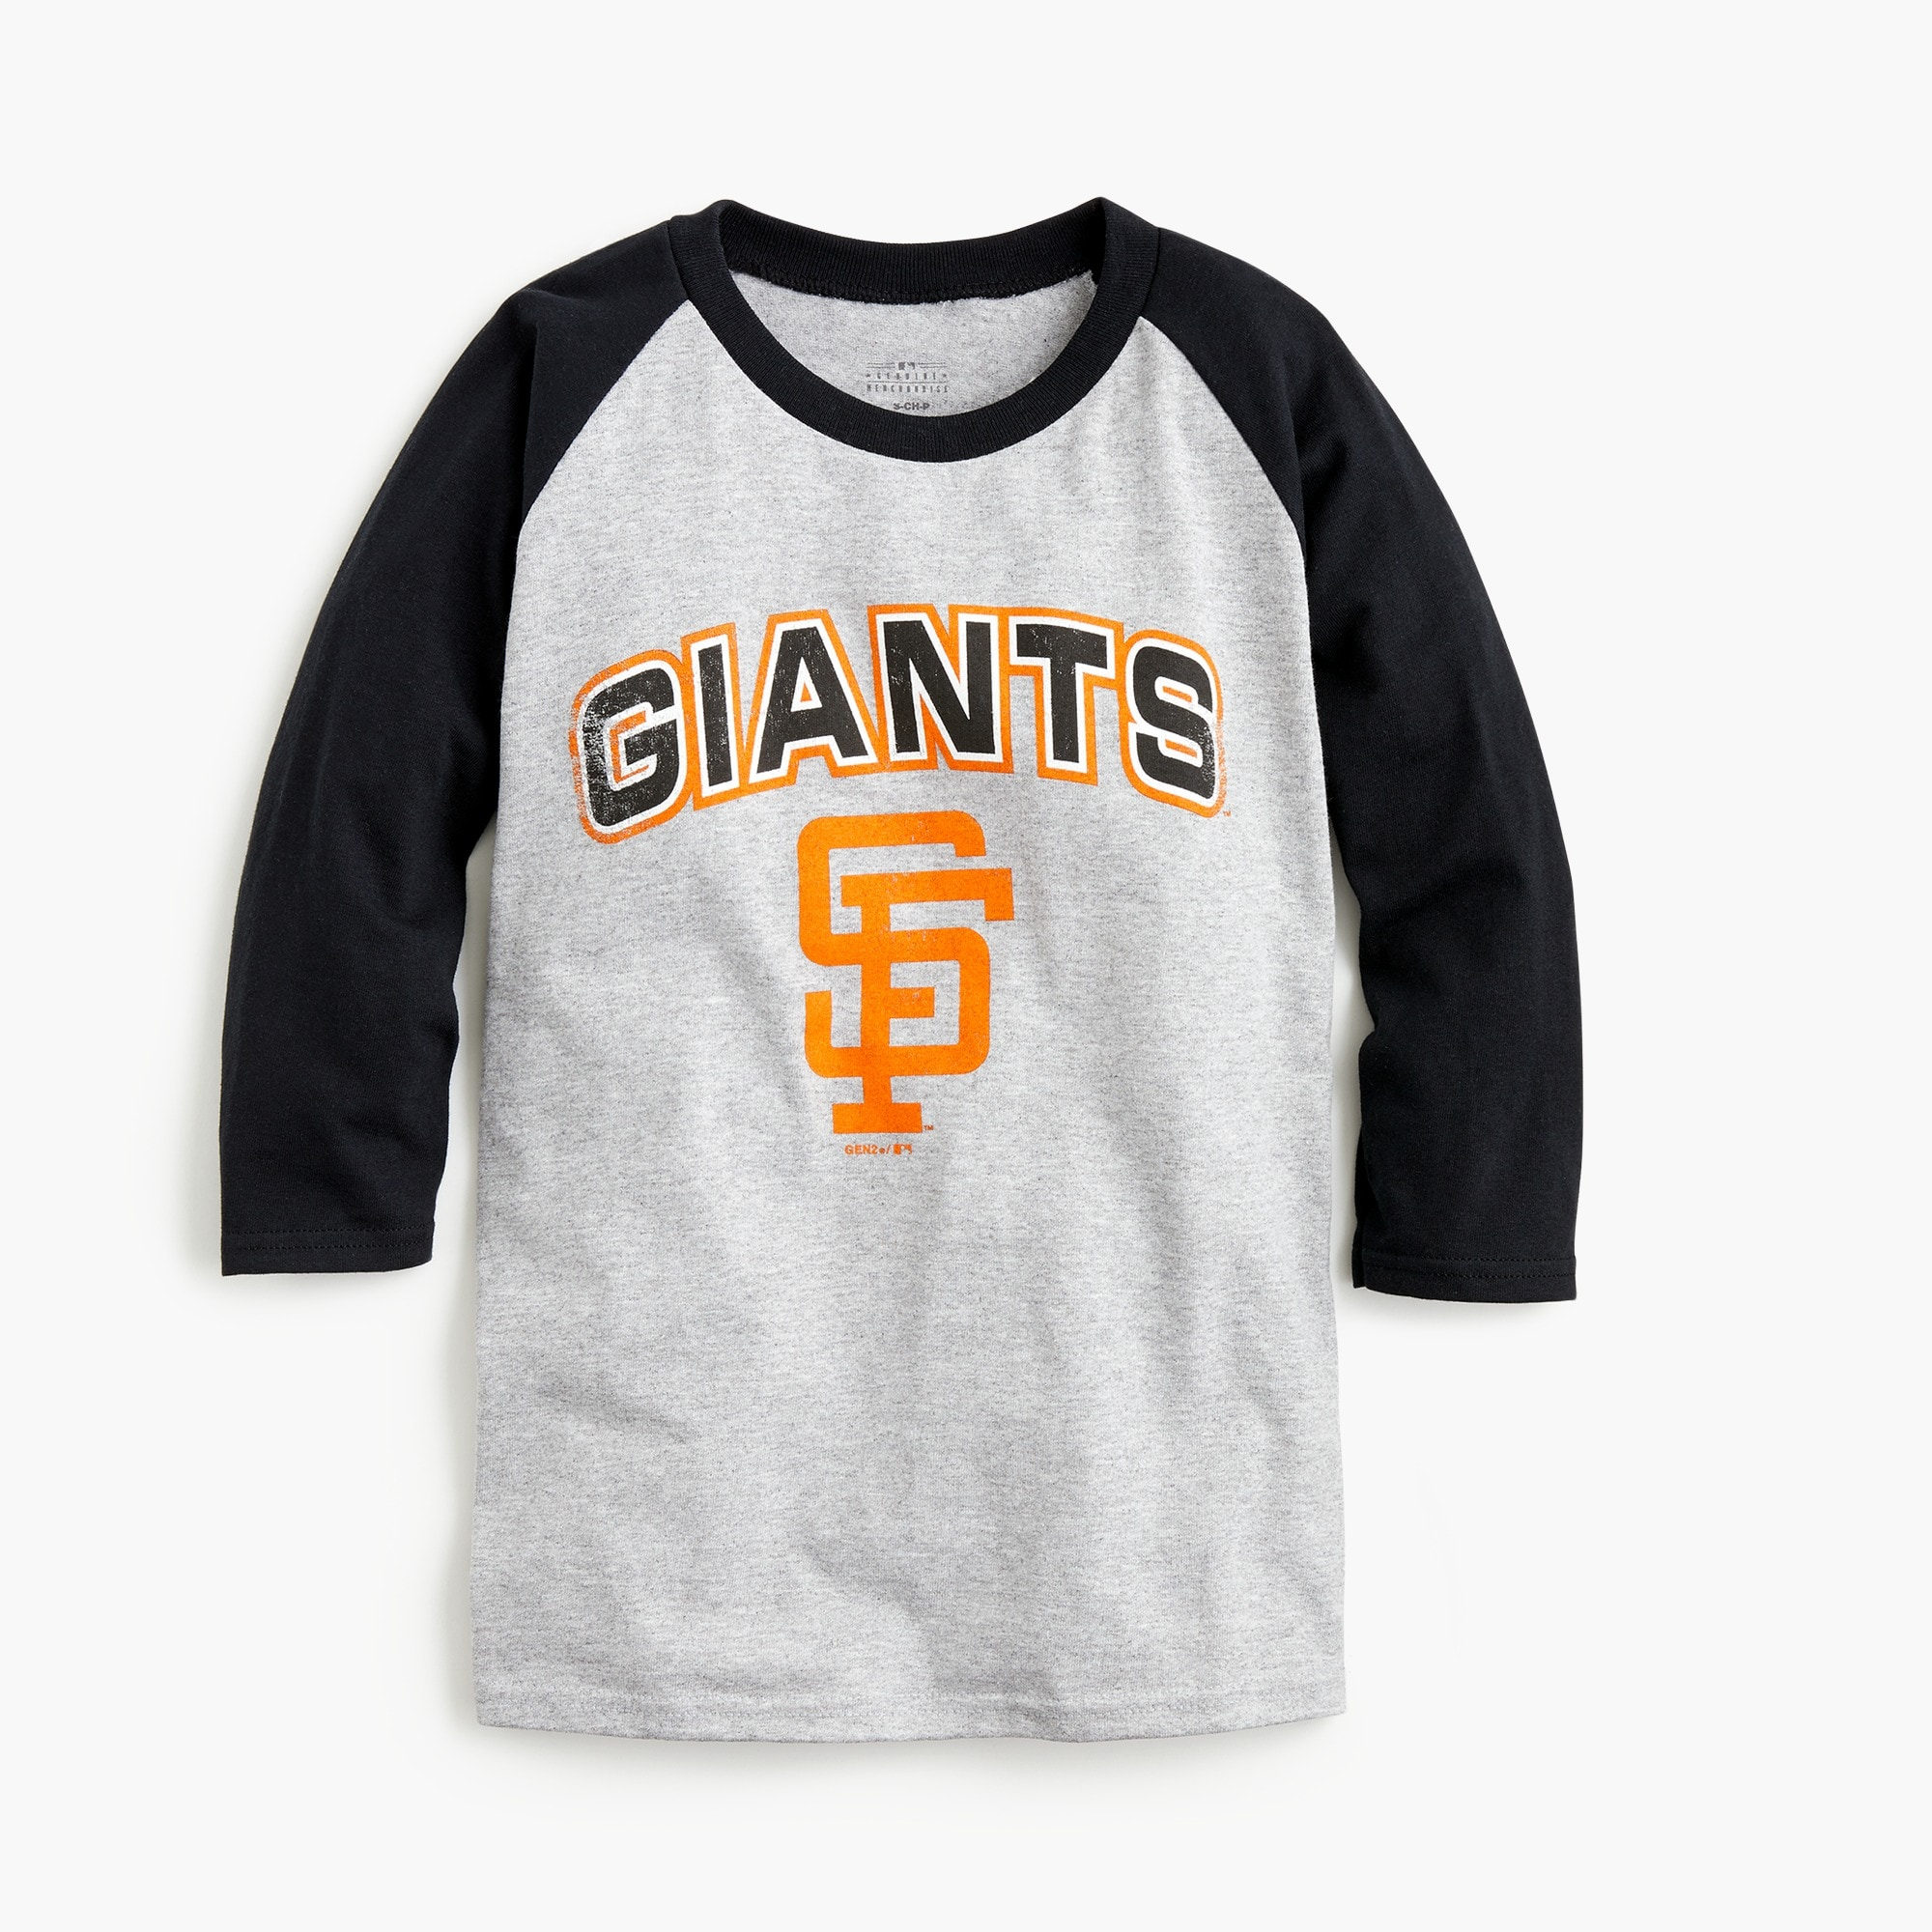 Kids' San Francisco Giants baseball T-shirt boy graphics shop c